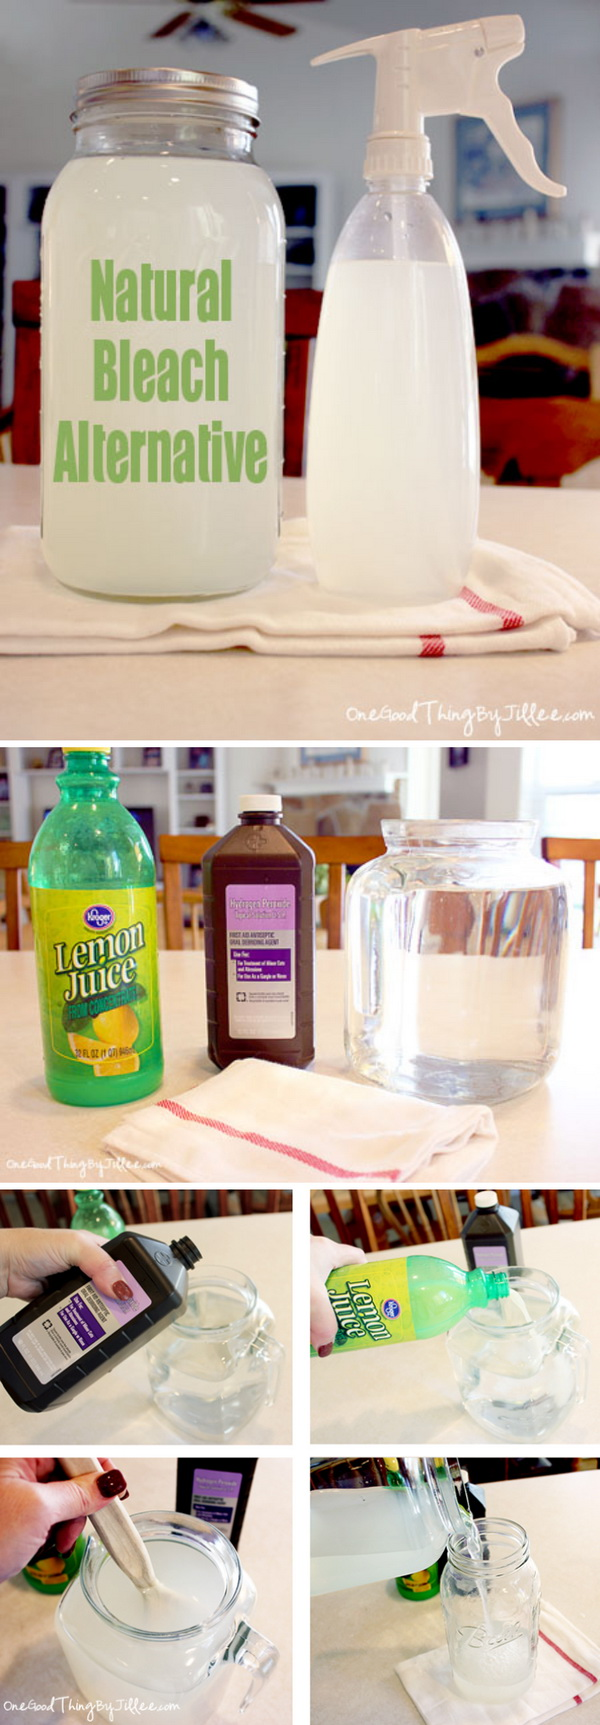 A Natural Bleach Alternative with Lemon juice and Peroxide. Making your own household products and save a ton of money on the essentials. Get the recipes from for creativejuice.com